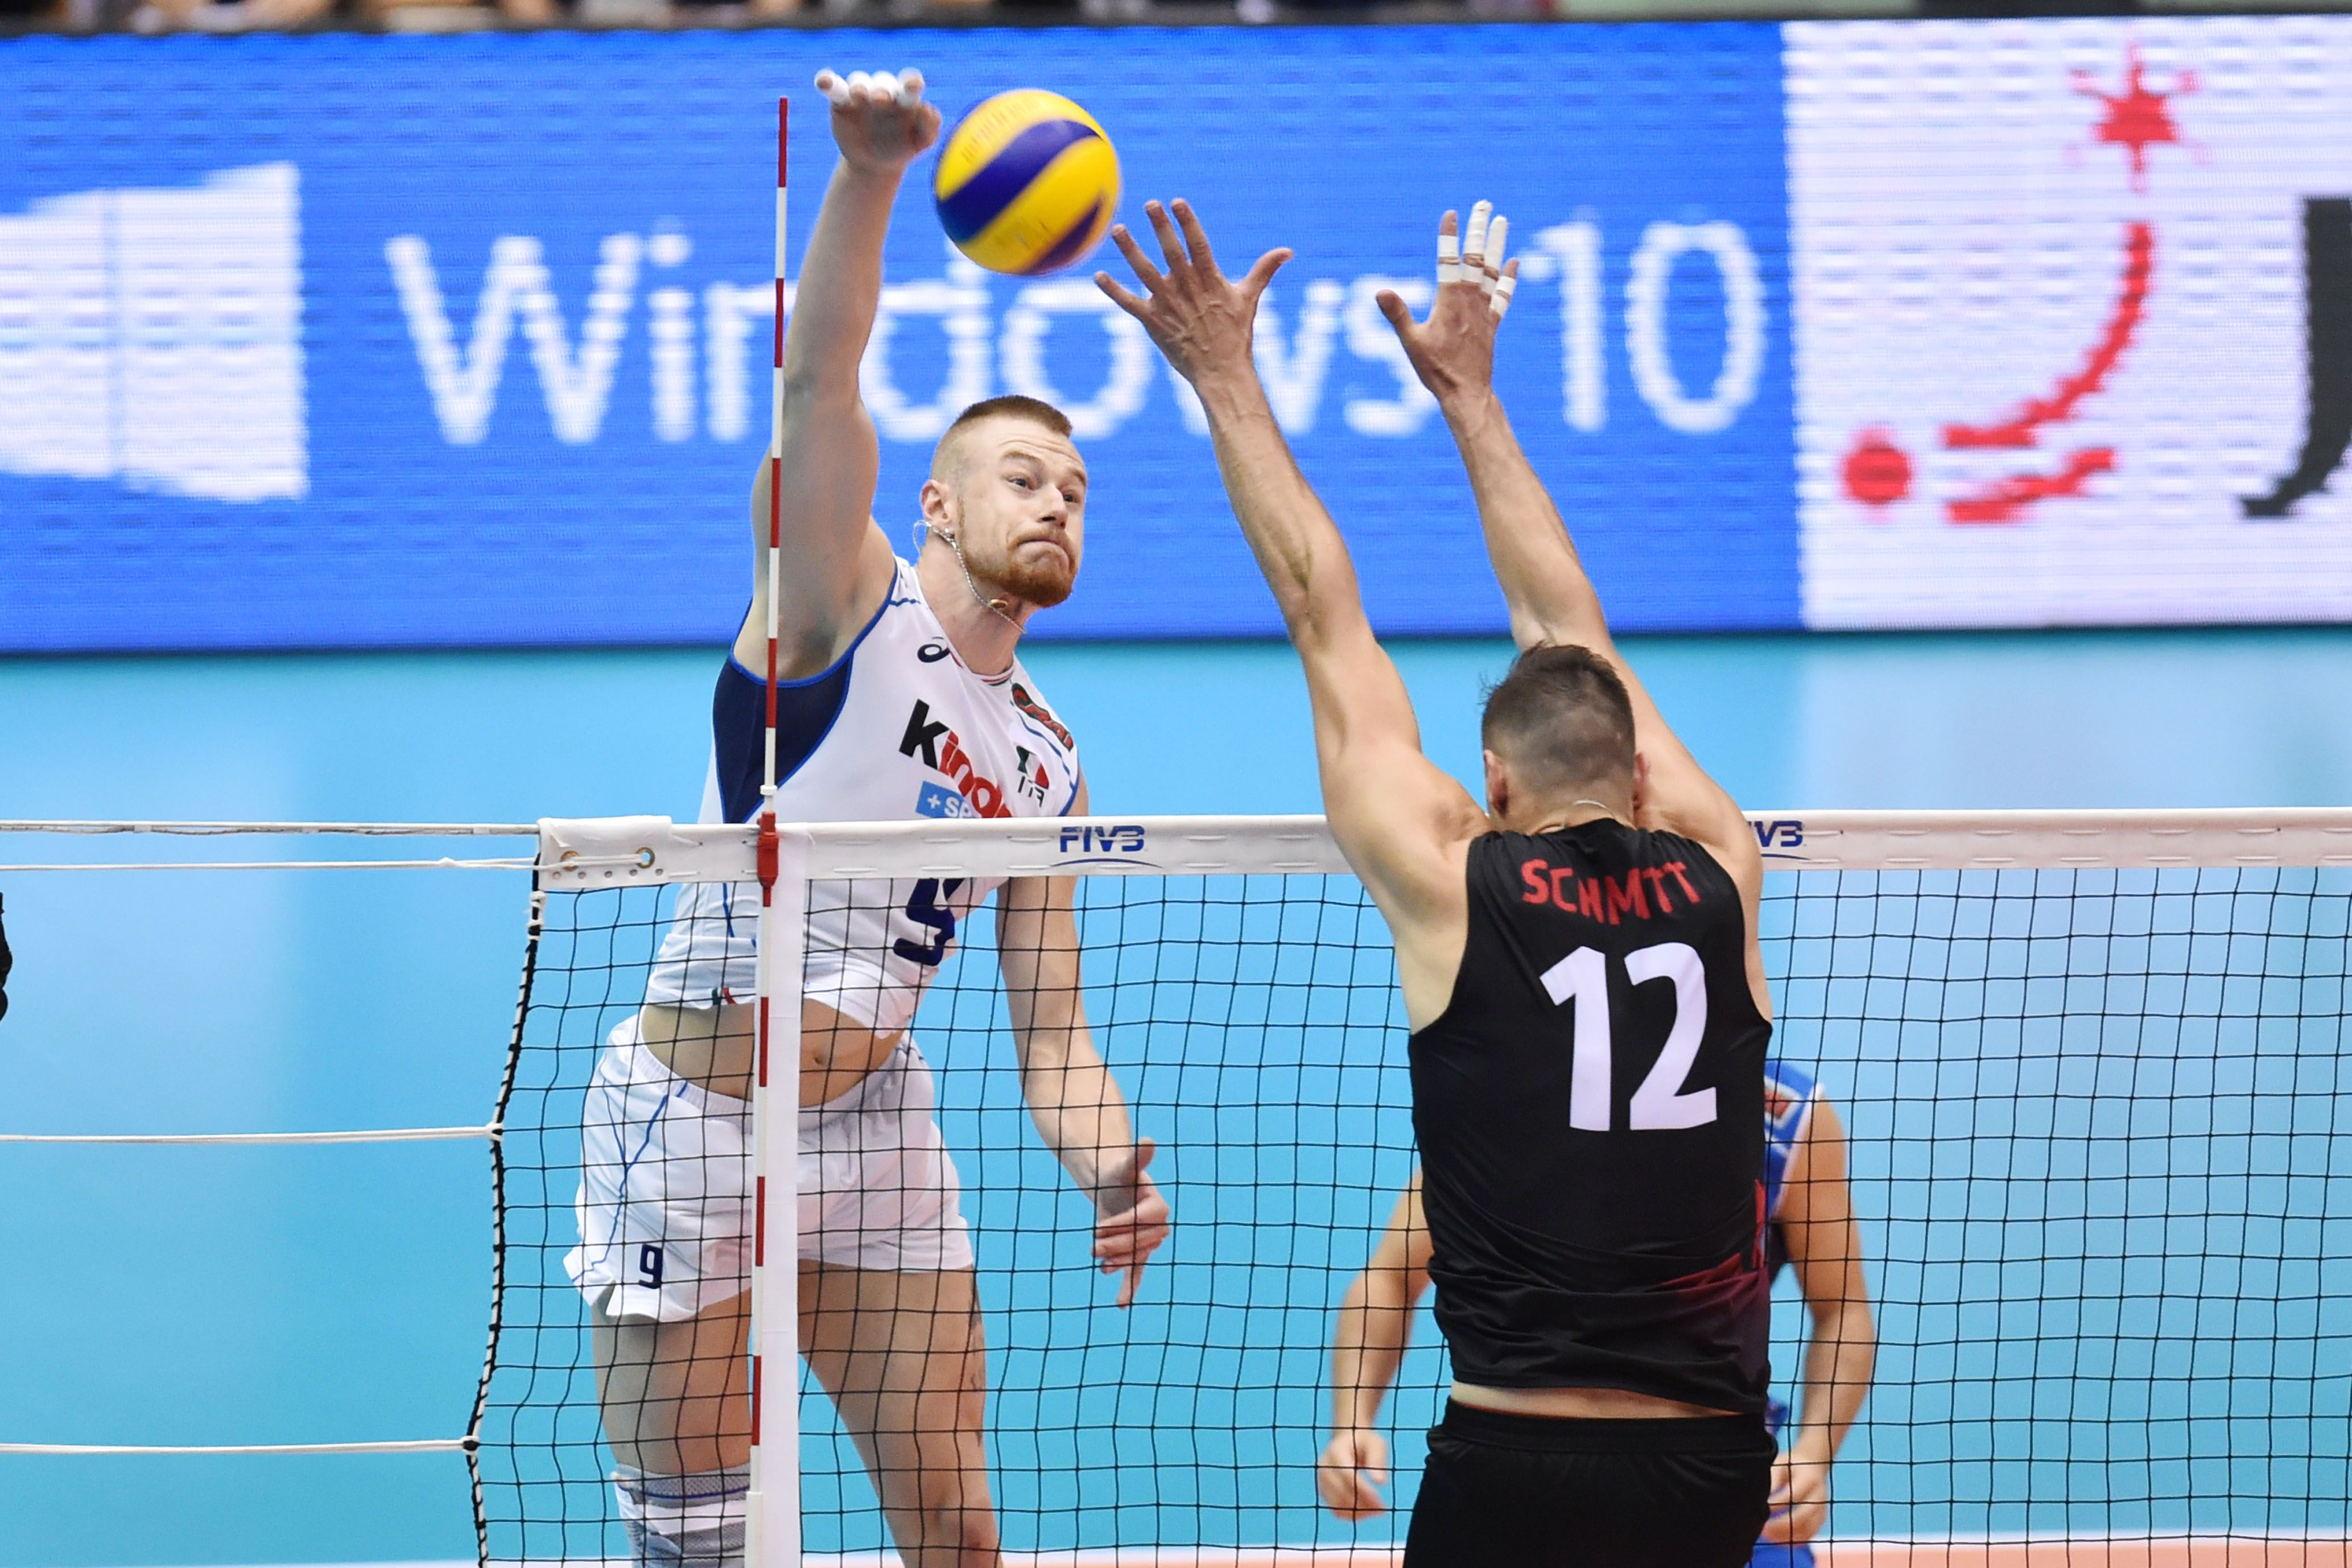 Forza Ivan Mens World Cup Forza Volleyball